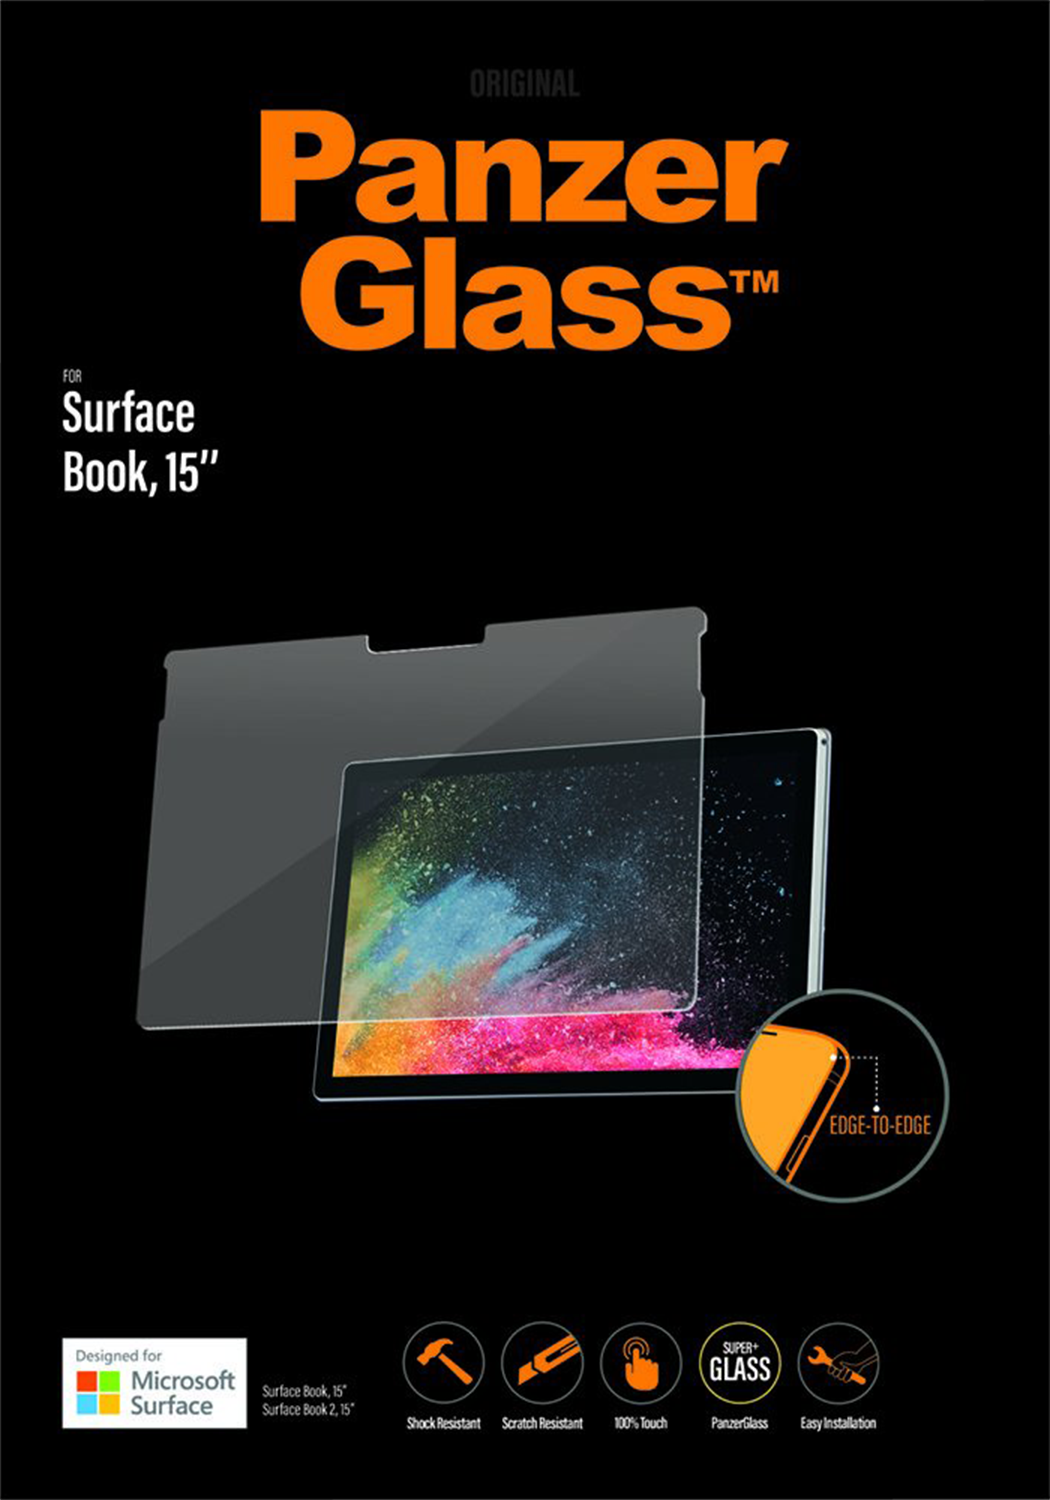 RE36nH0?ver=4ce0 - PanzerGlass Surface Book 15'' Screen Protector